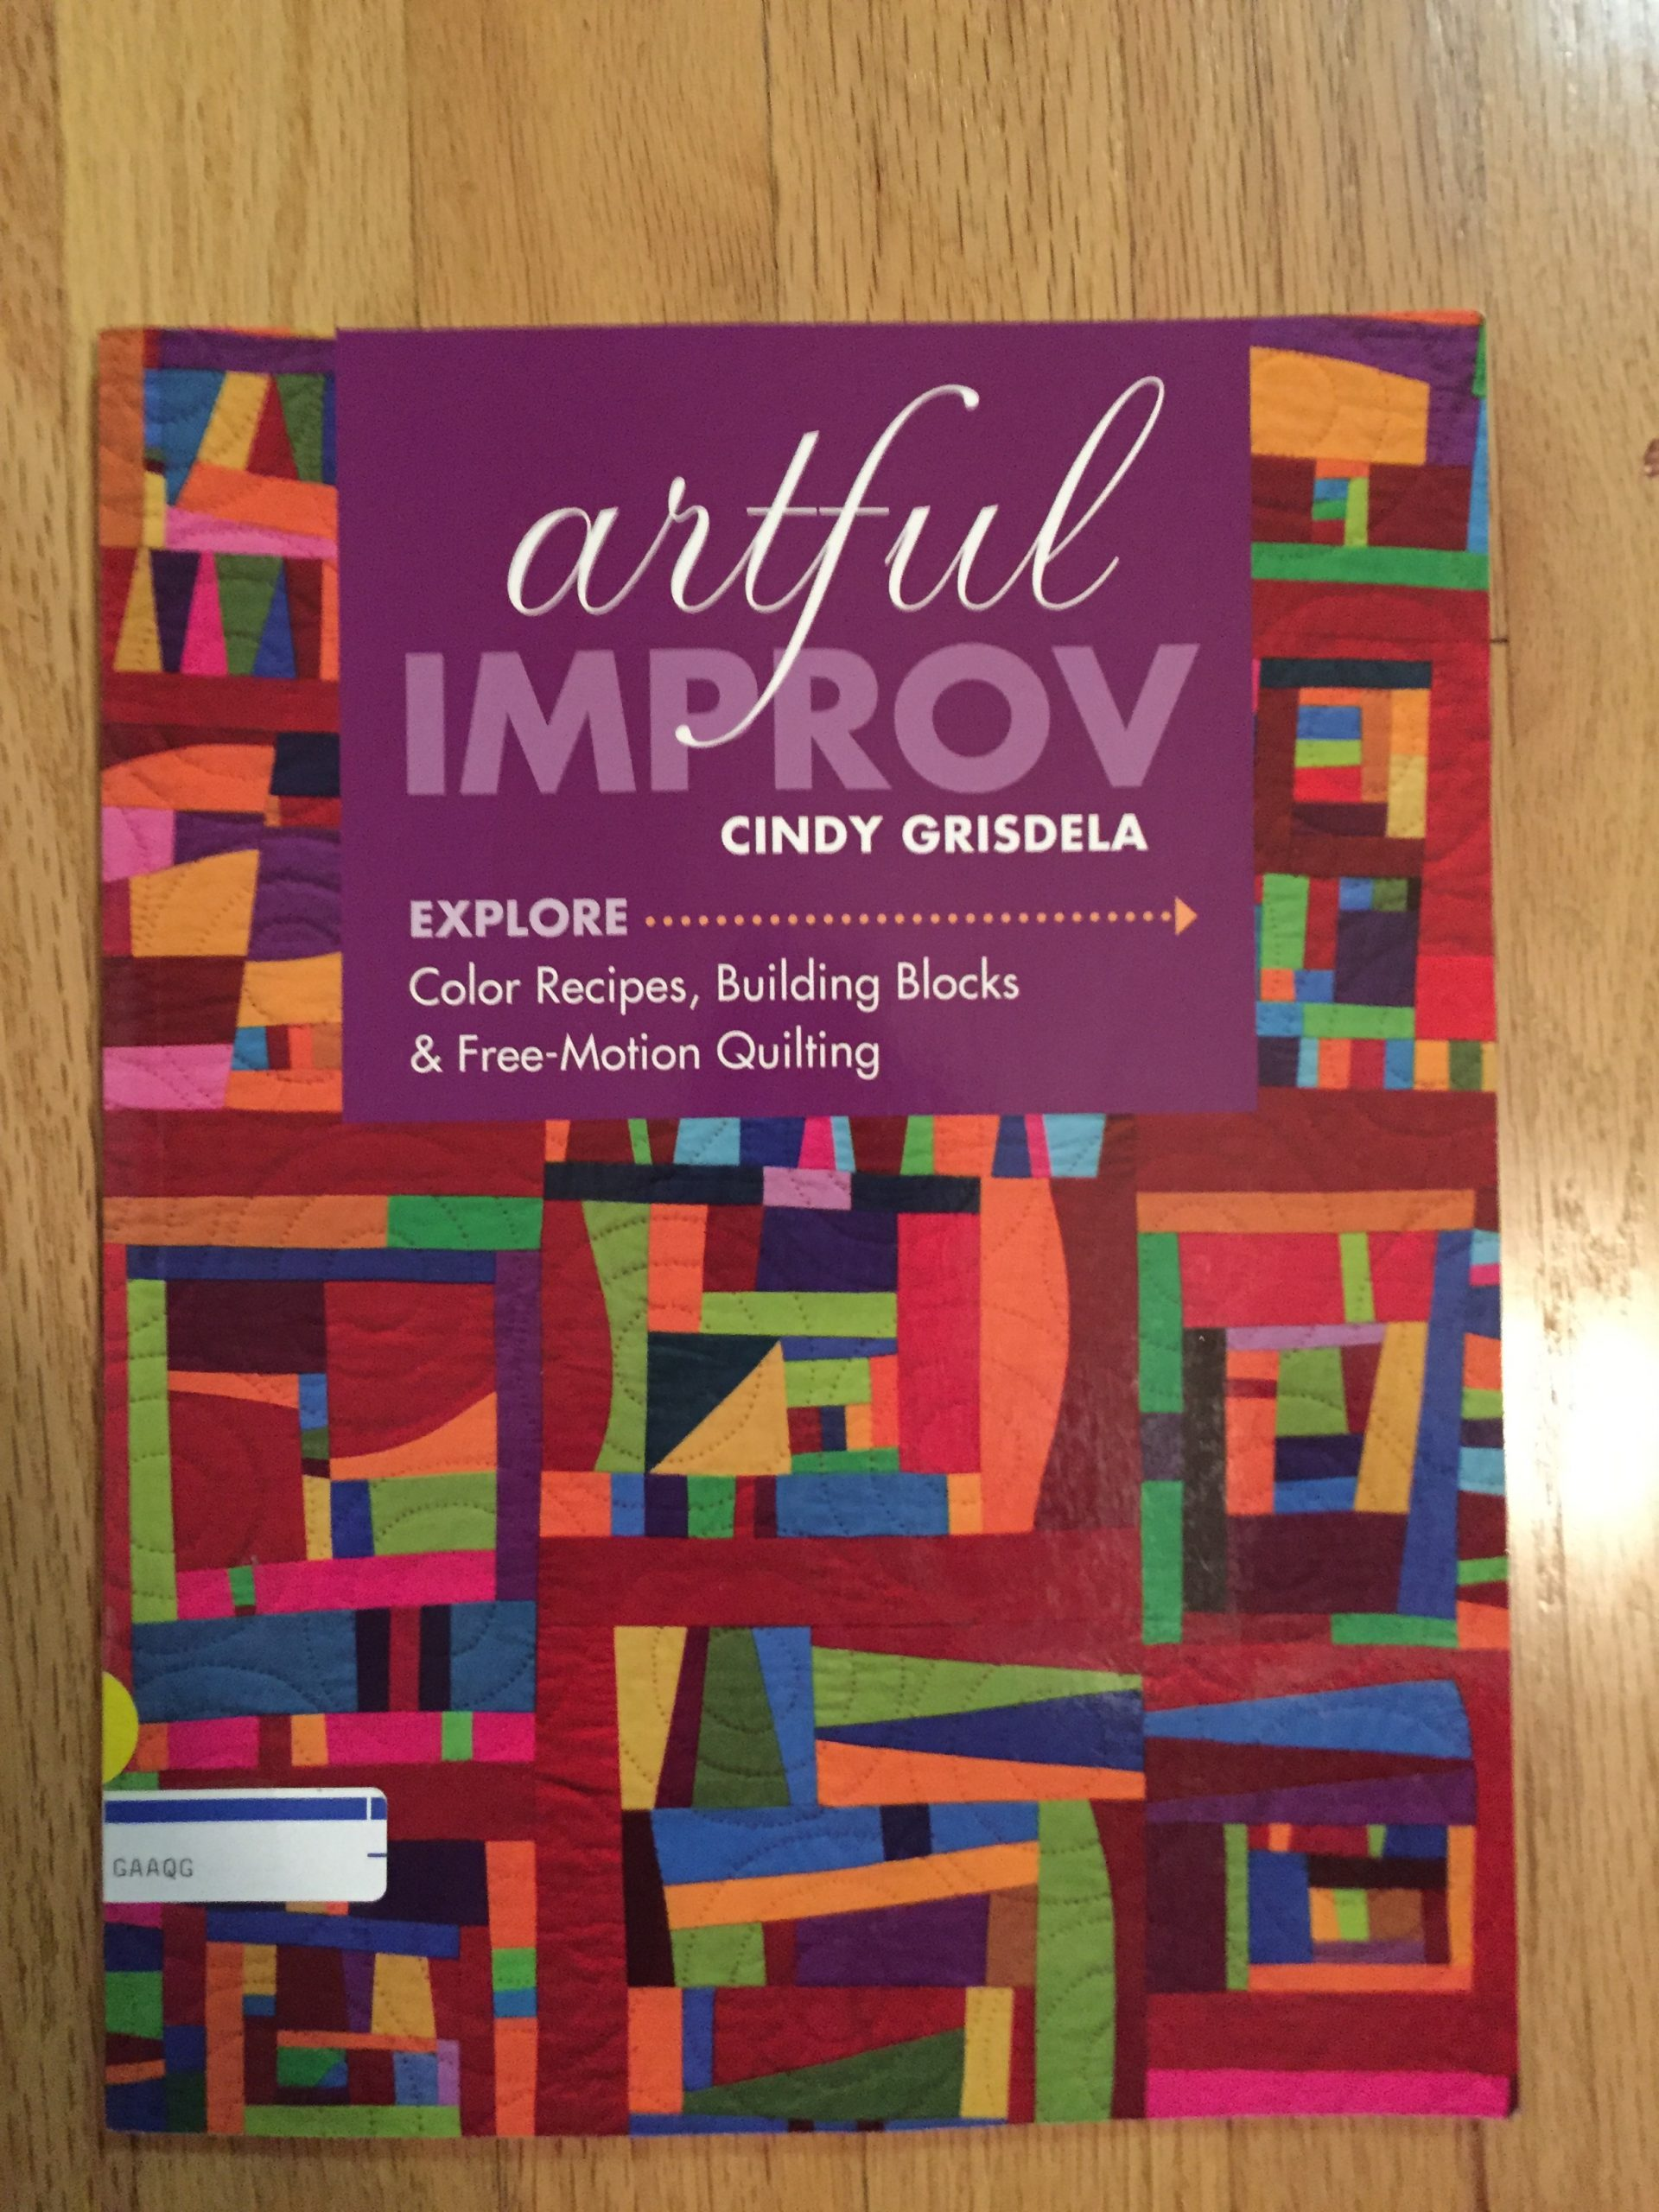 Artful Improv by Cindy Grisdela available to members from GAAQG Library